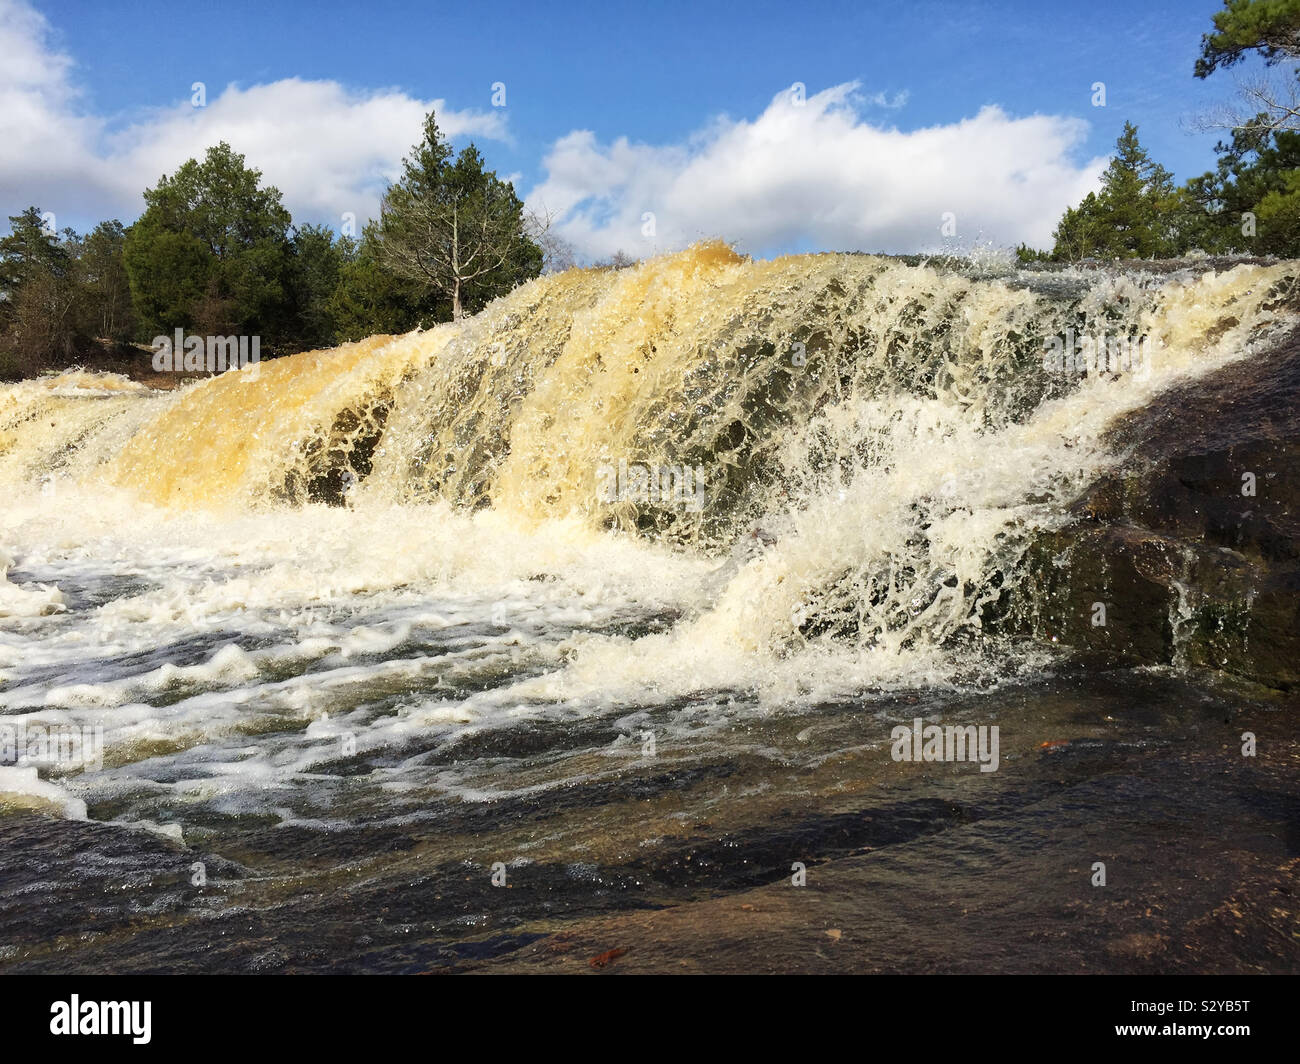 Fast flowing waterfall and surrounding rocks at an outdoor public park in Columbus Georgia USA after a hard rain. Stock Photo